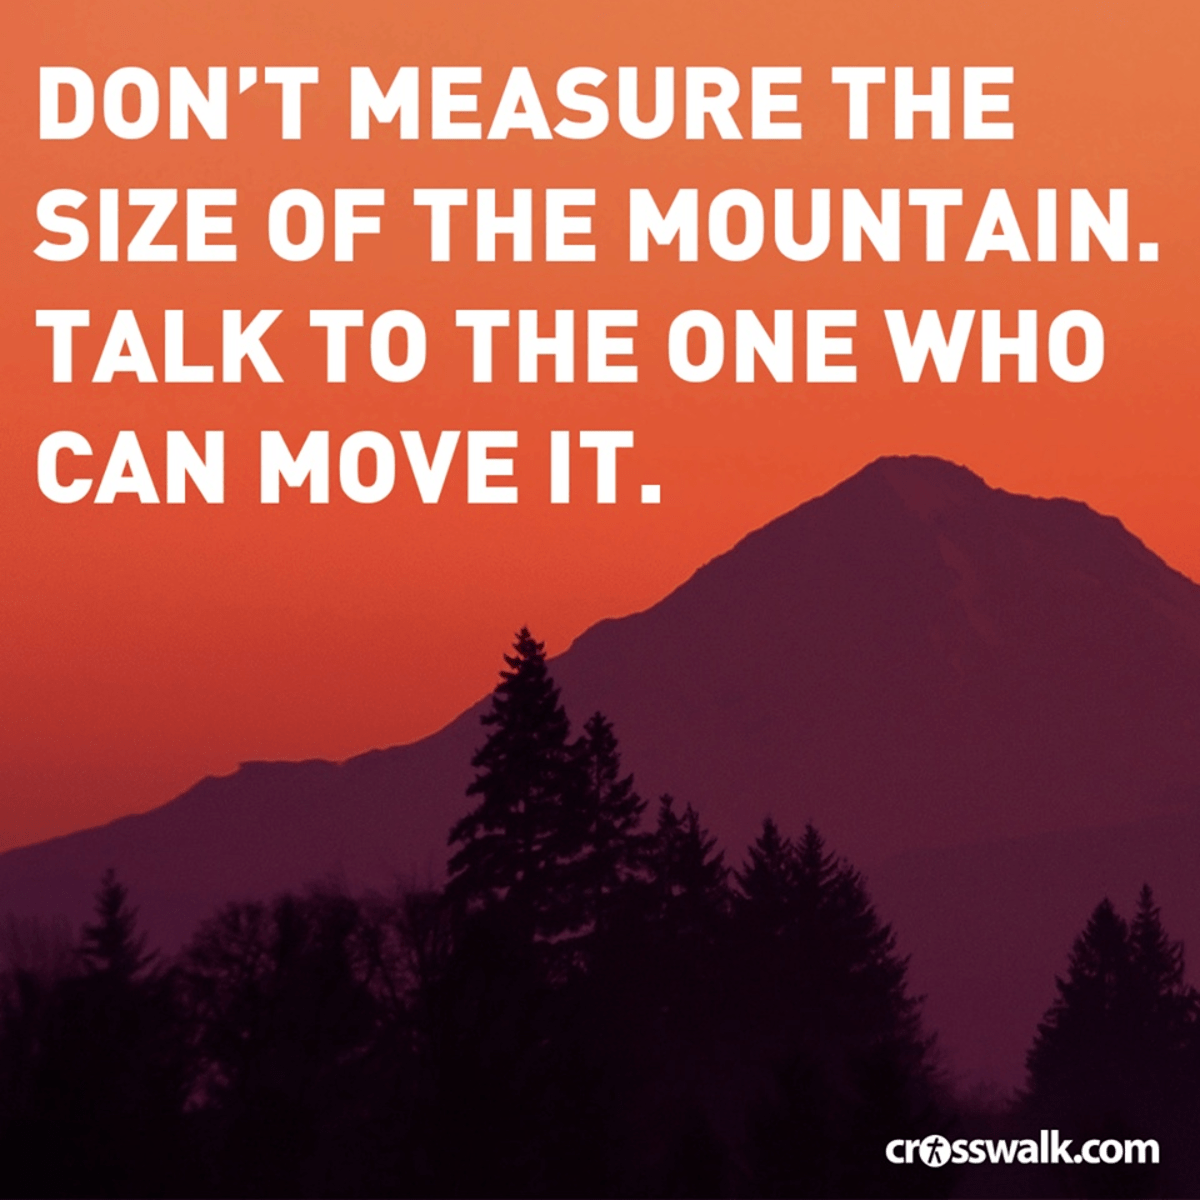 Don't Measure the Size of the Mountain